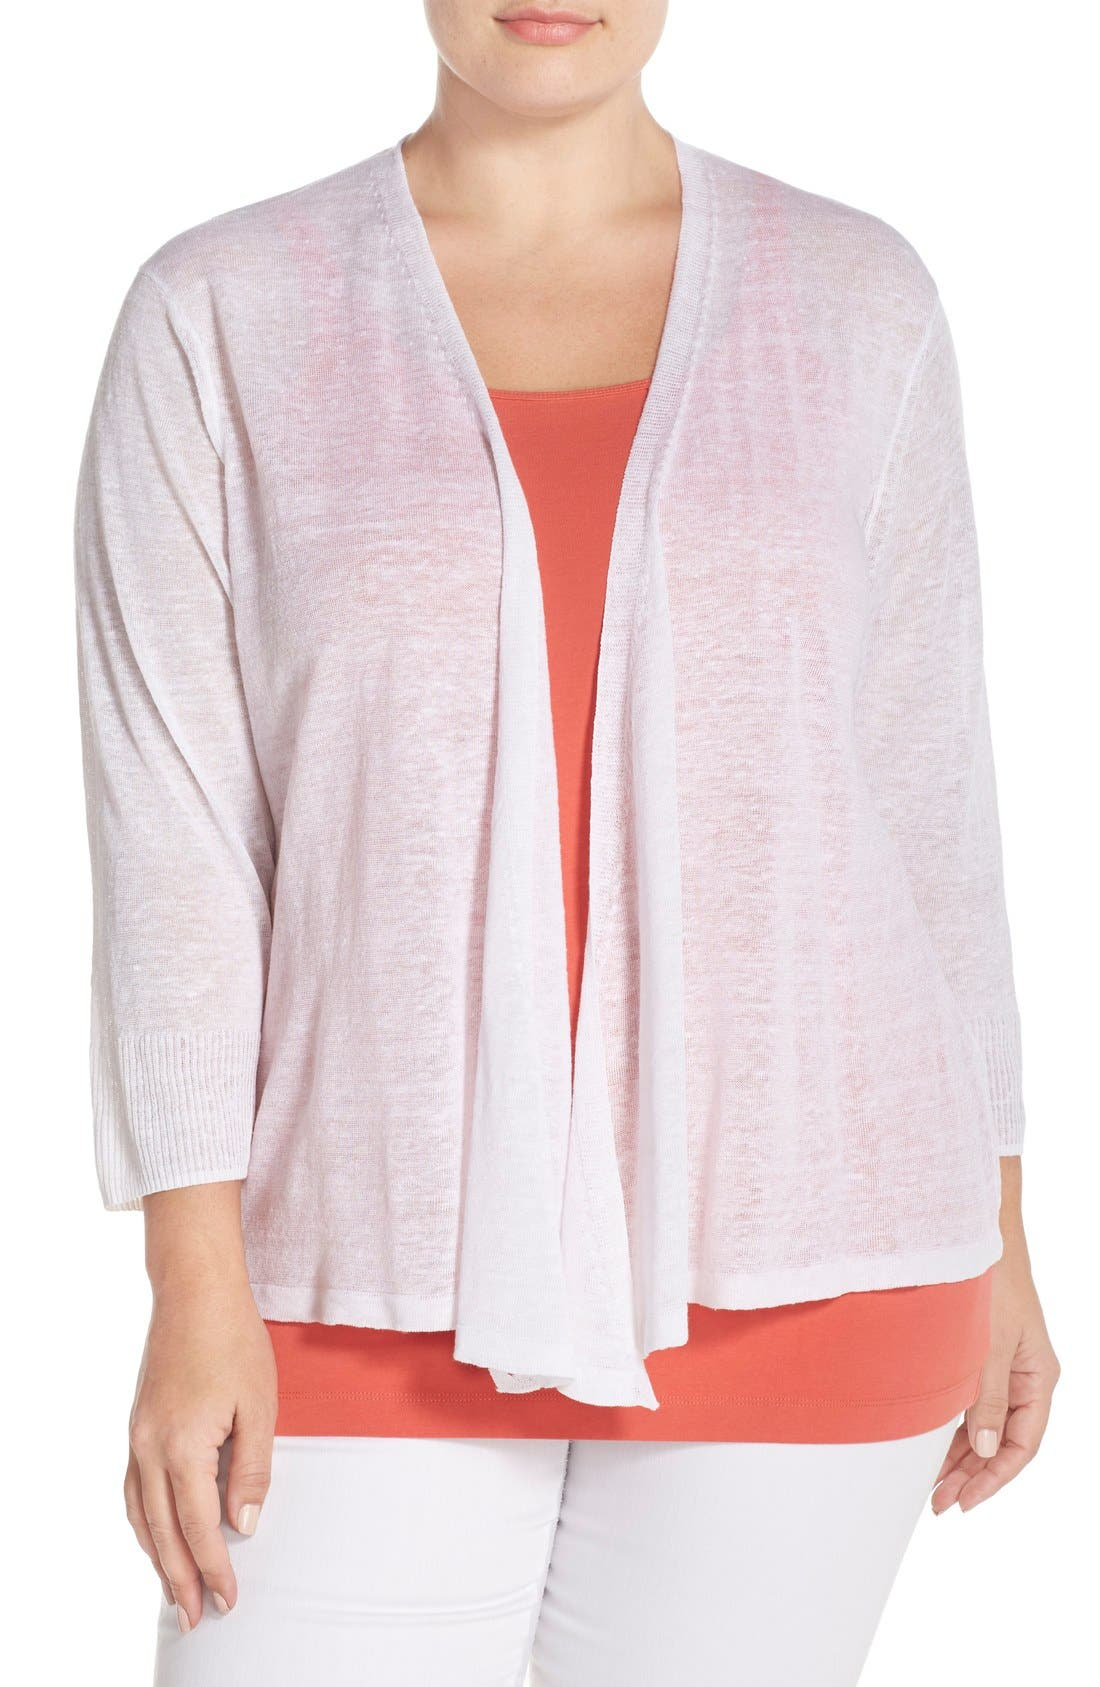 '4-Way' Three Quarter Sleeve Convertible Cardigan,                         Main,                         color, Paper White